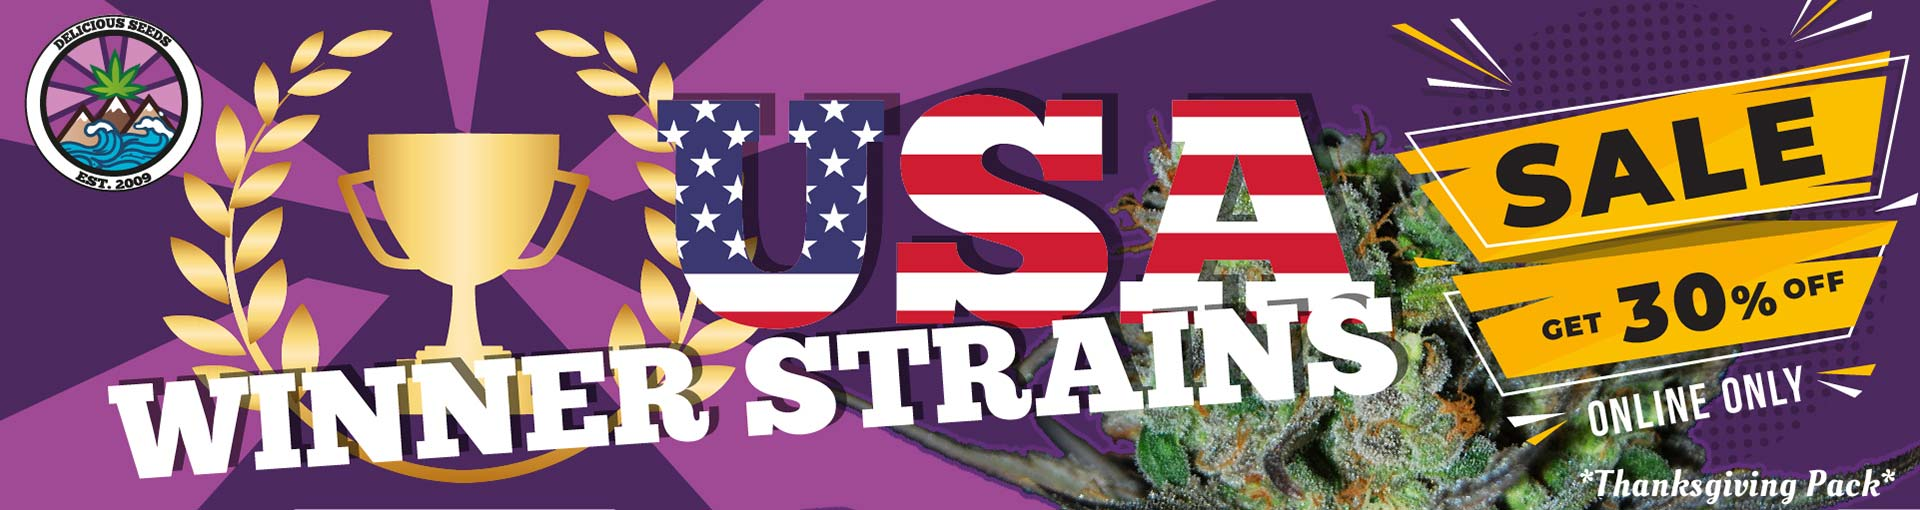 USA WINNER STRAINS